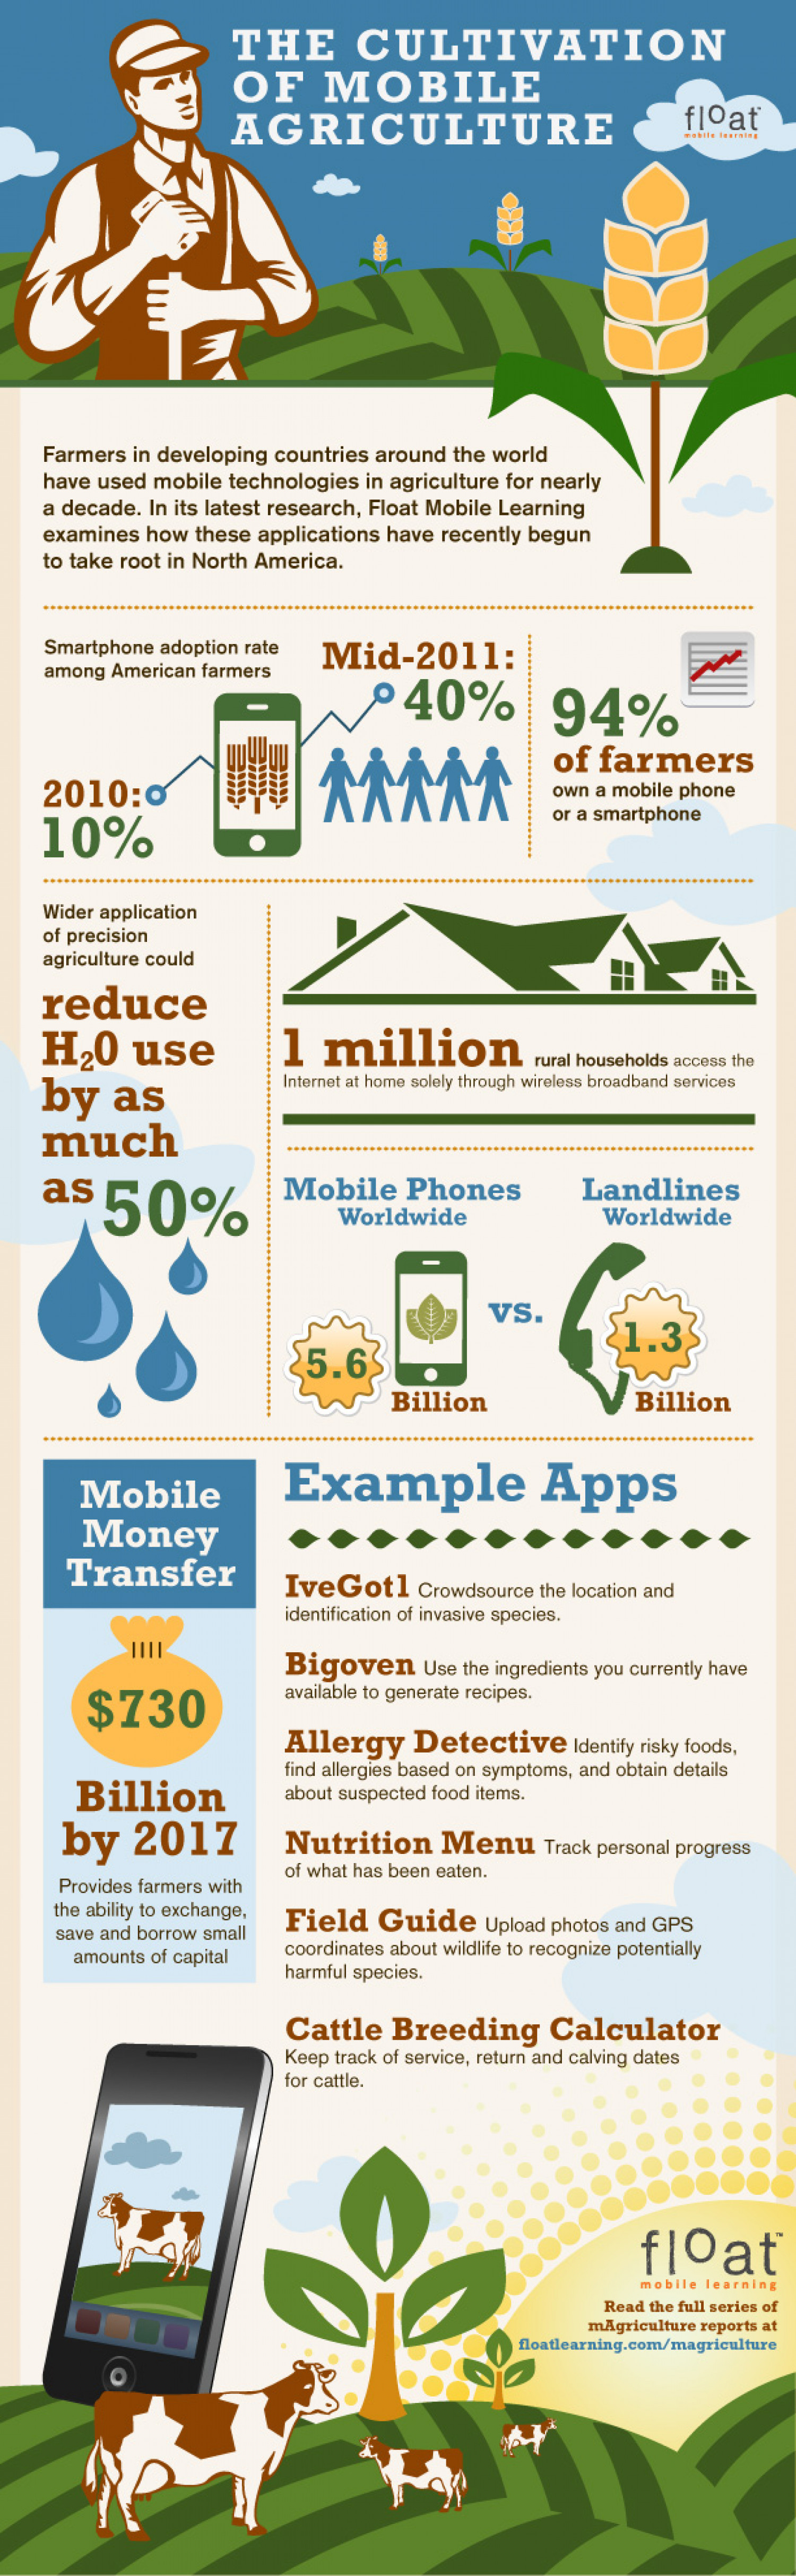 The Cultivation of Mobile Agriculture Infographic